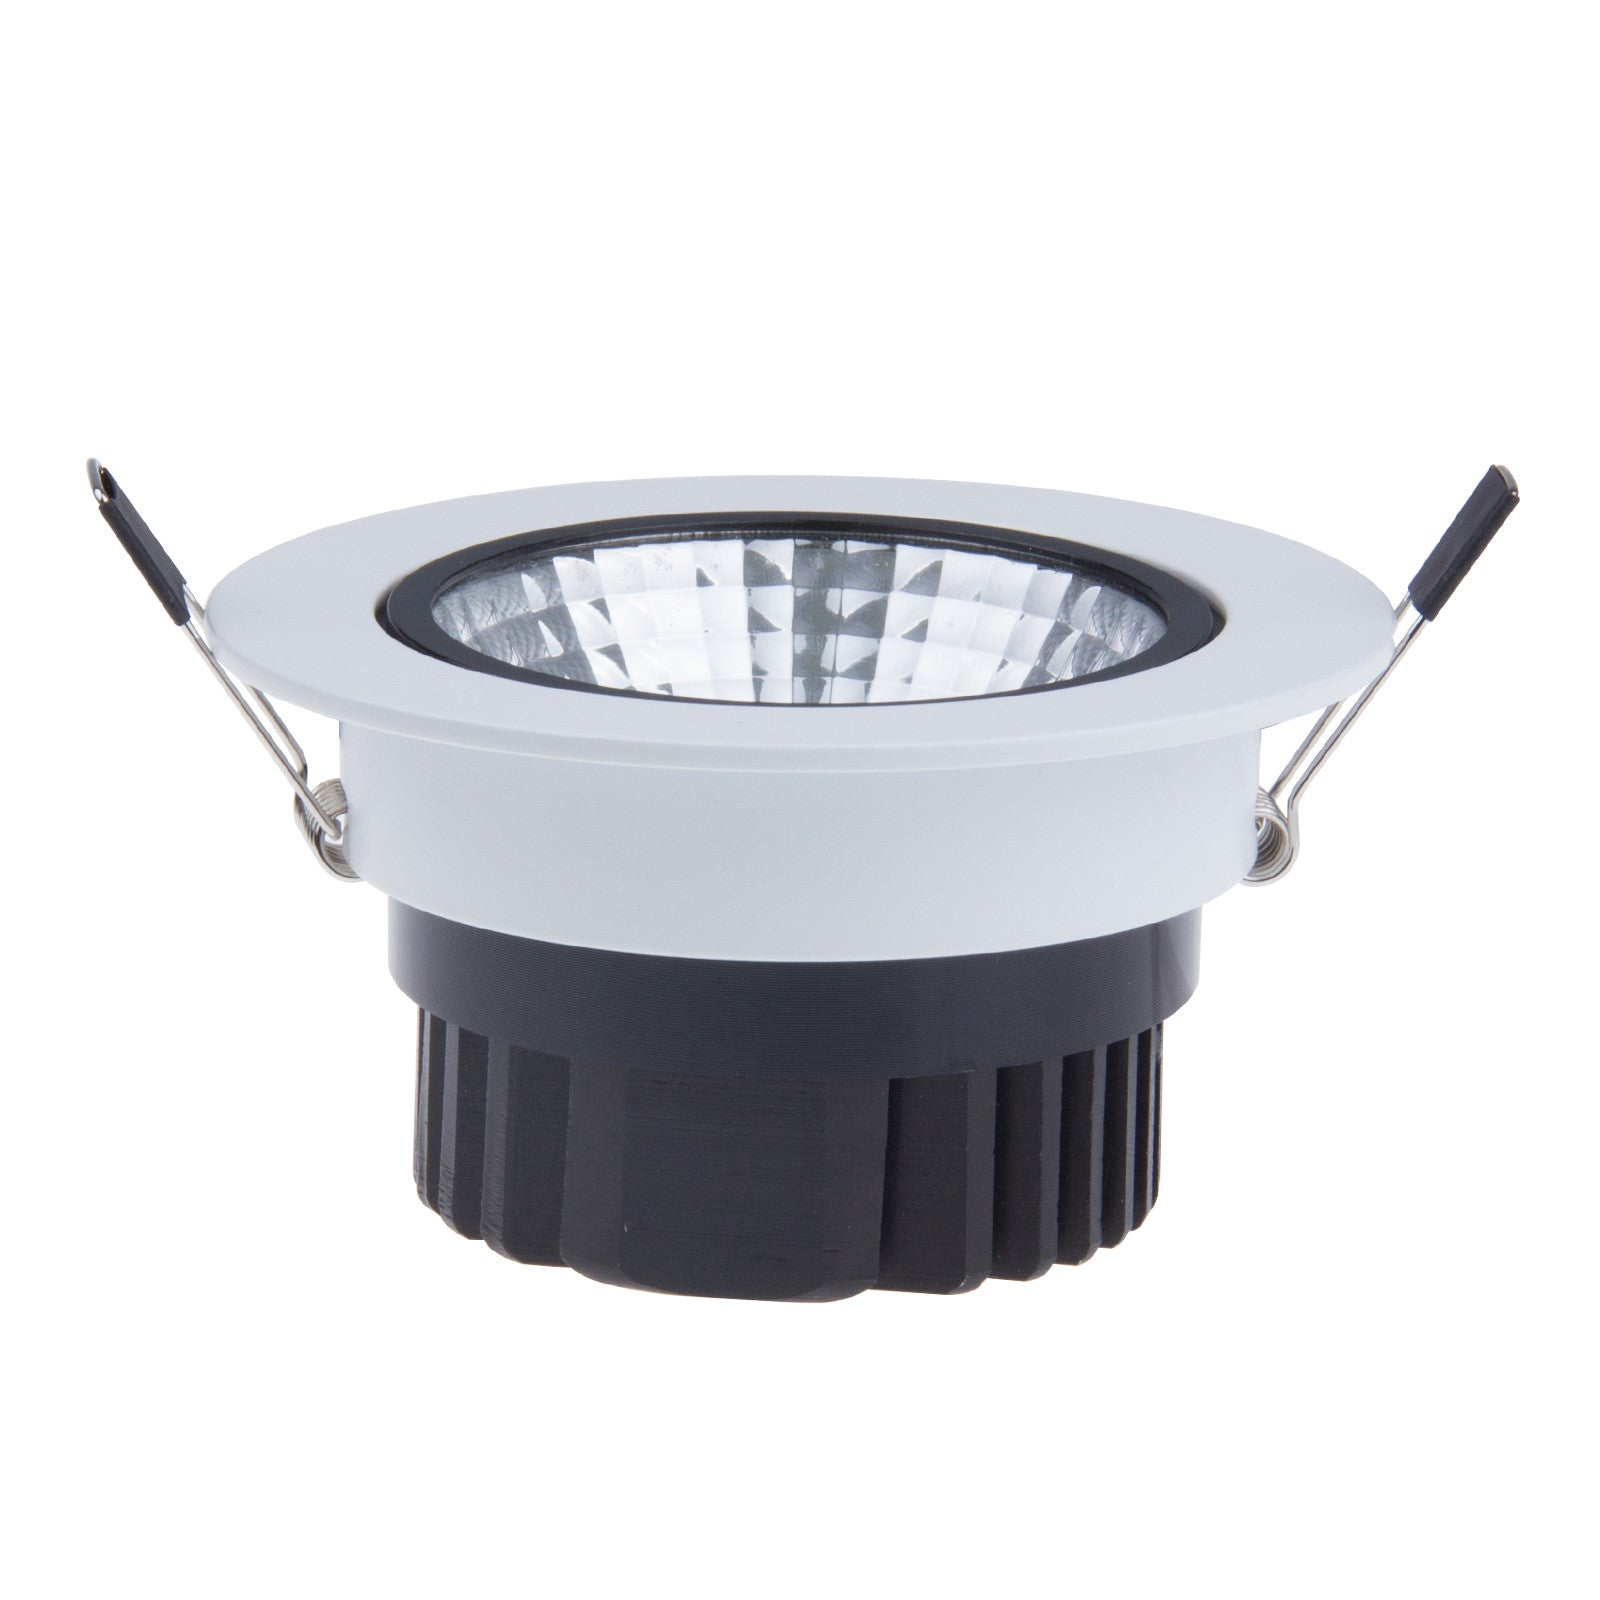 12W DimmableLED COB Ceiling Light Recessed Spotlight Downlight Warm White AC 100-245V - sweet-casa.com